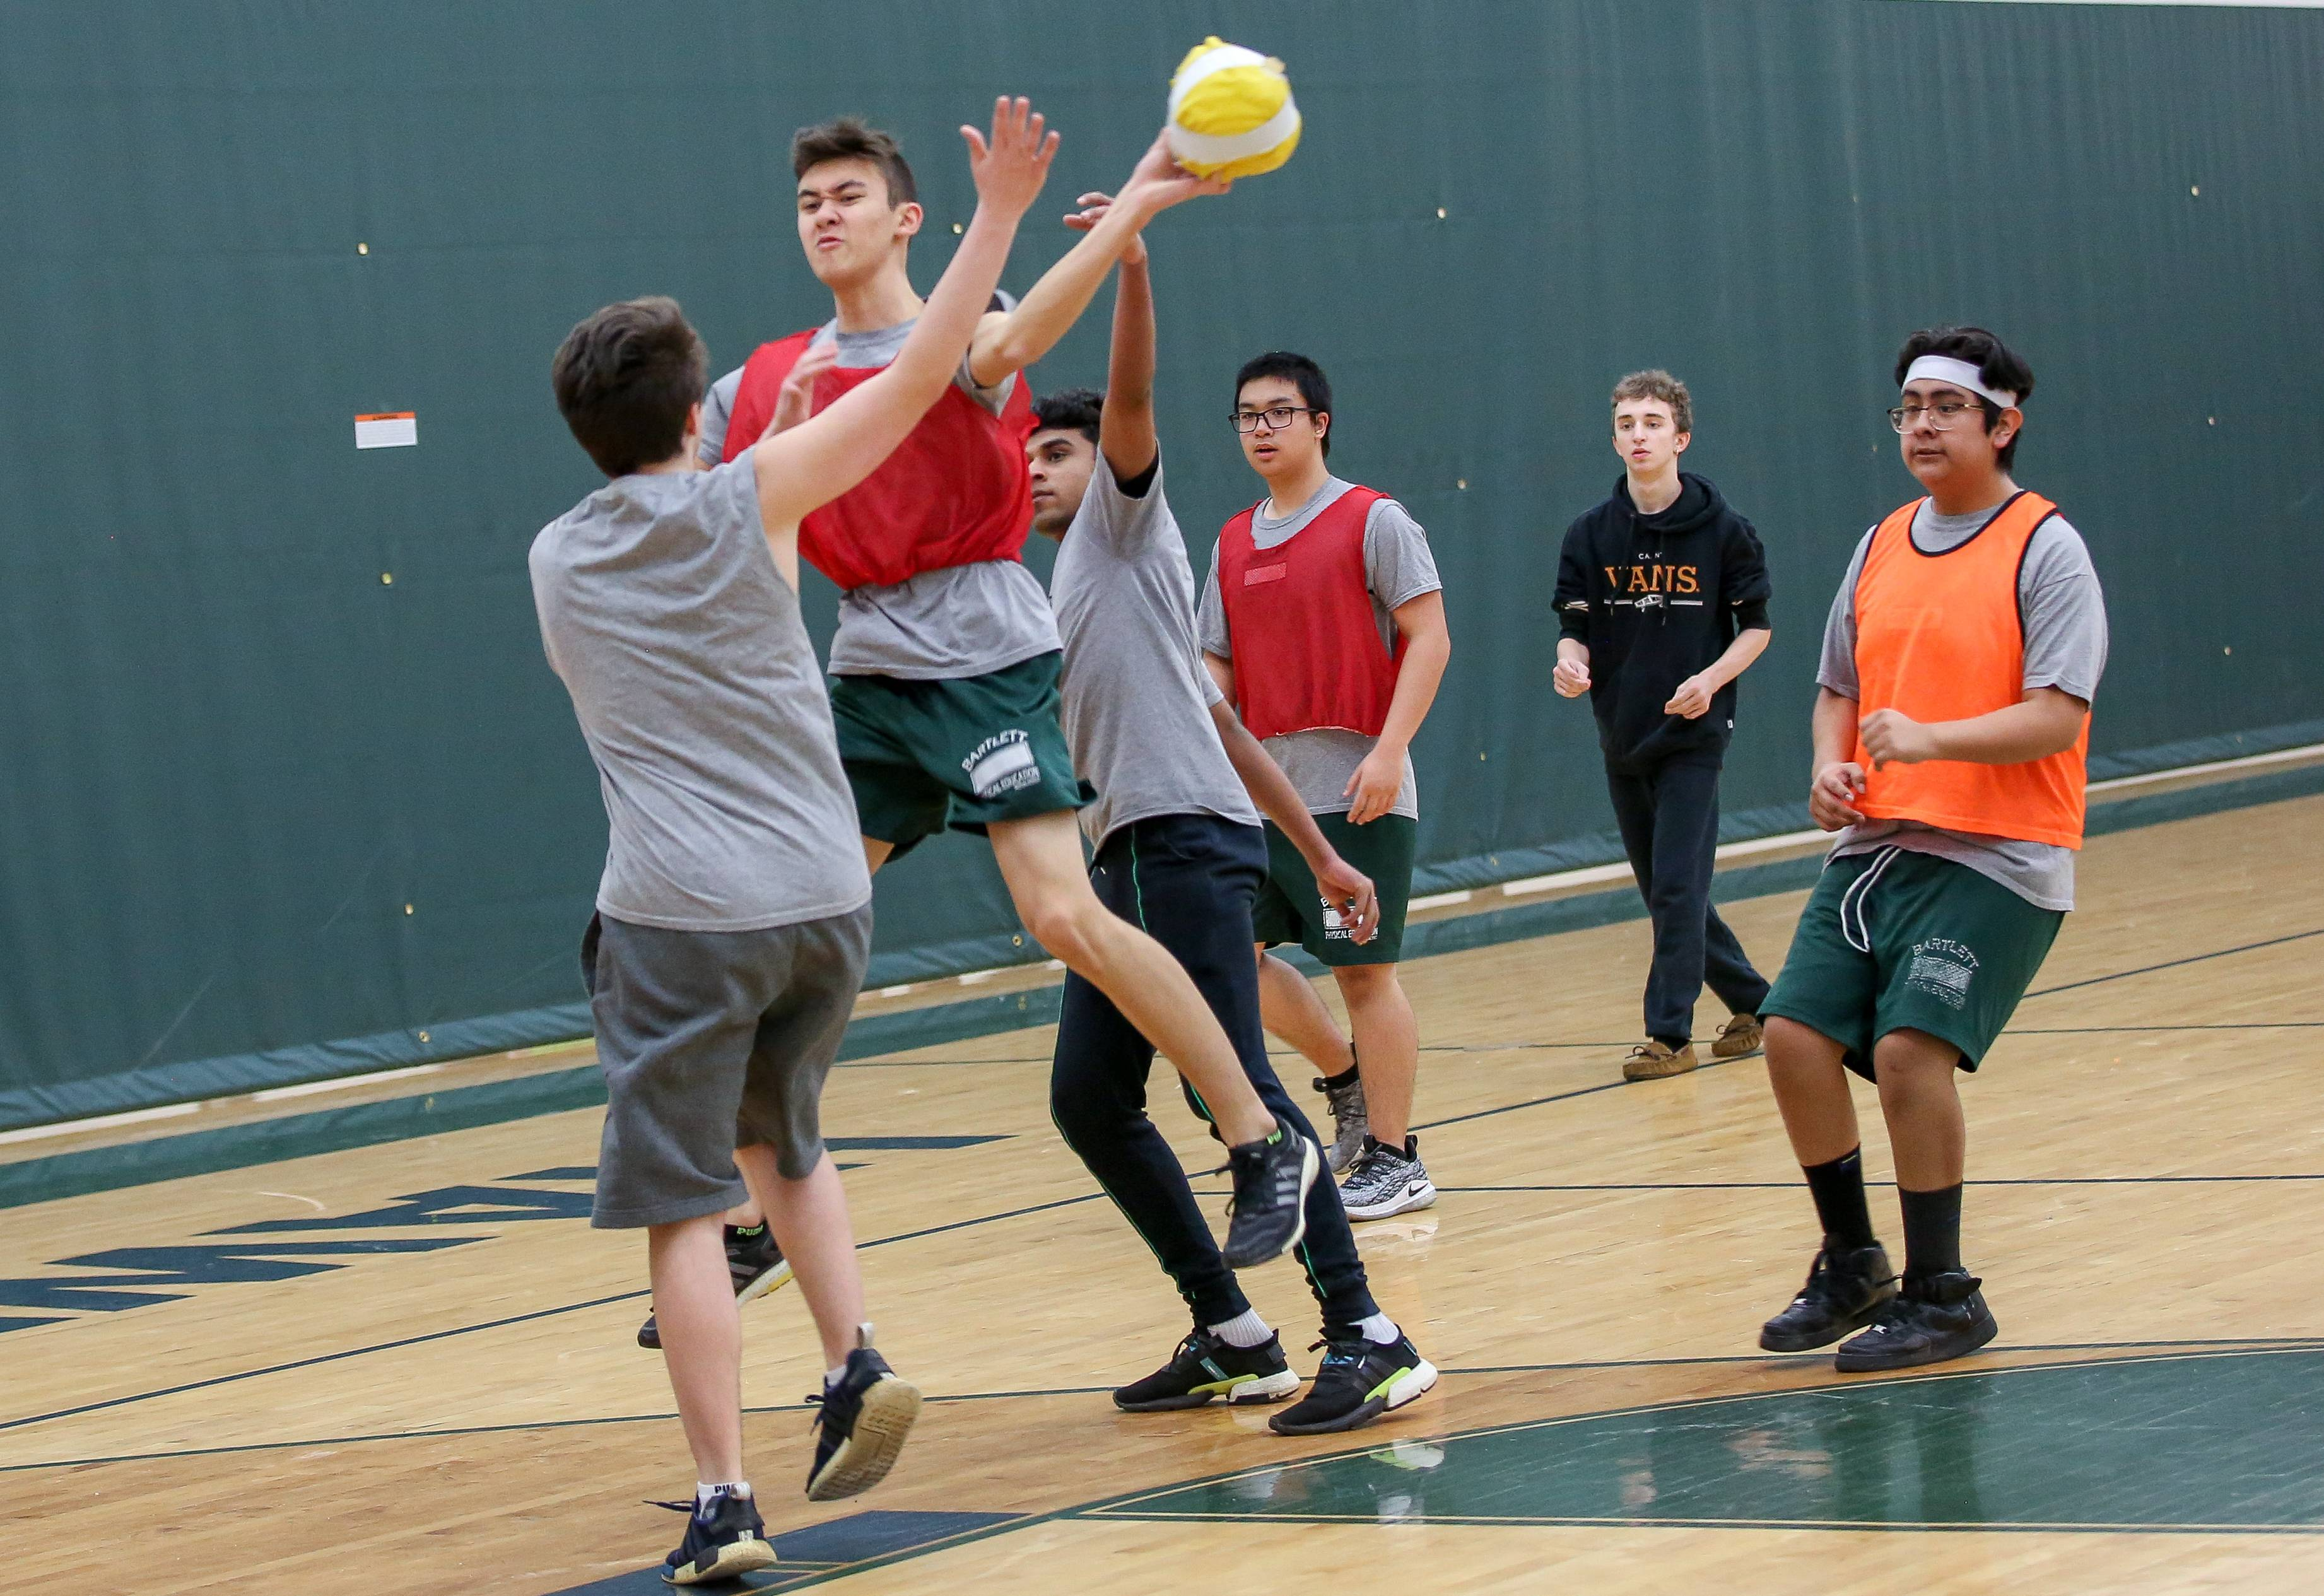 Juniors and seniors play handball in their team sports class at Bartlett High School on Thursday. Elgin Area School District U-46 this fall will be testing an independent, online physical education curriculum, allowing high school students to be in charge of their own wellness.